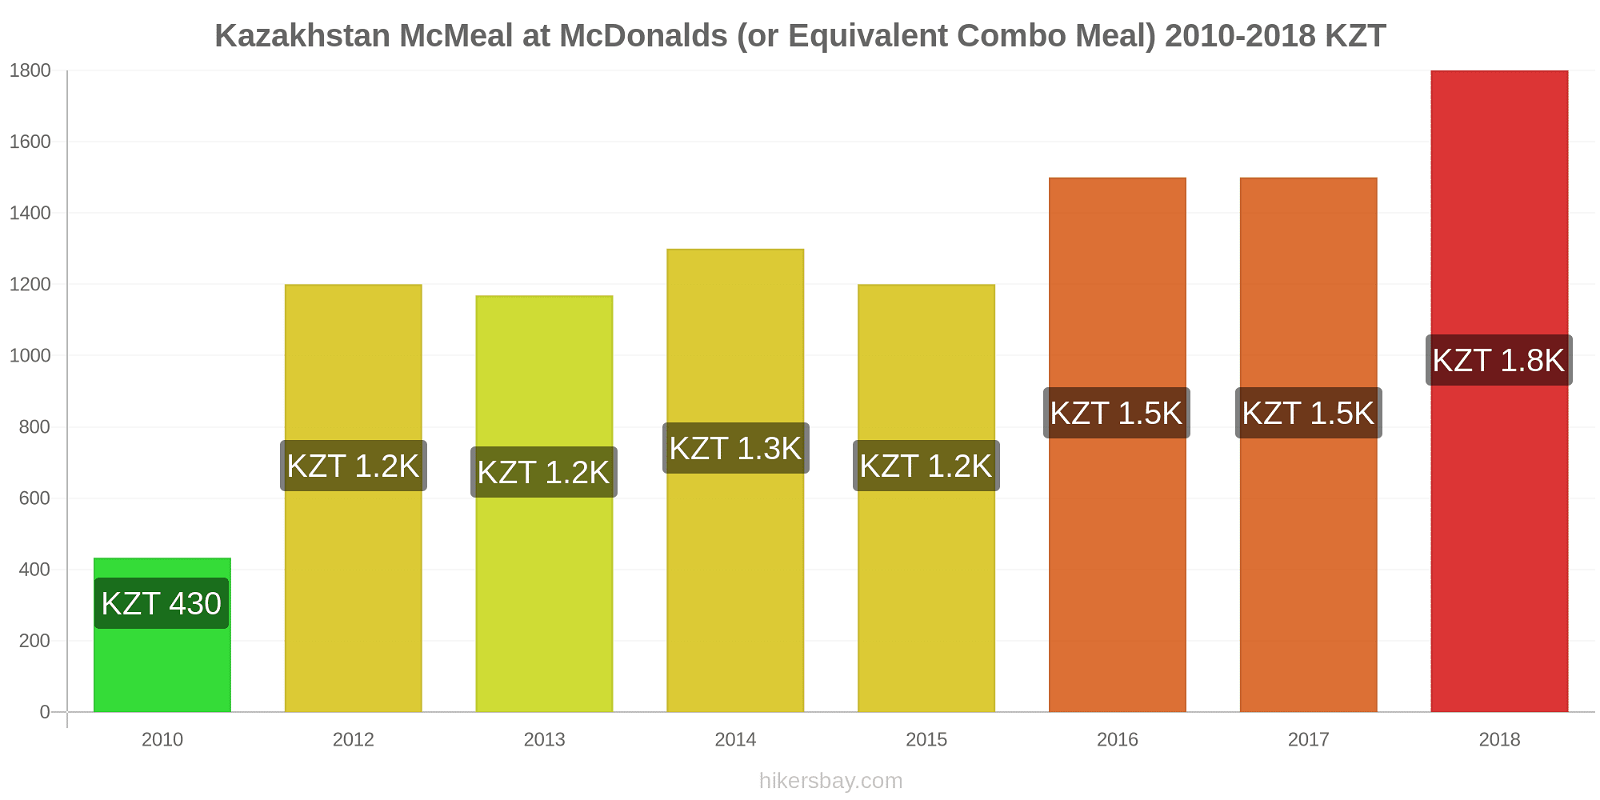 Kazakhstan price changes McMeal at McDonalds (or Equivalent Combo Meal) hikersbay.com